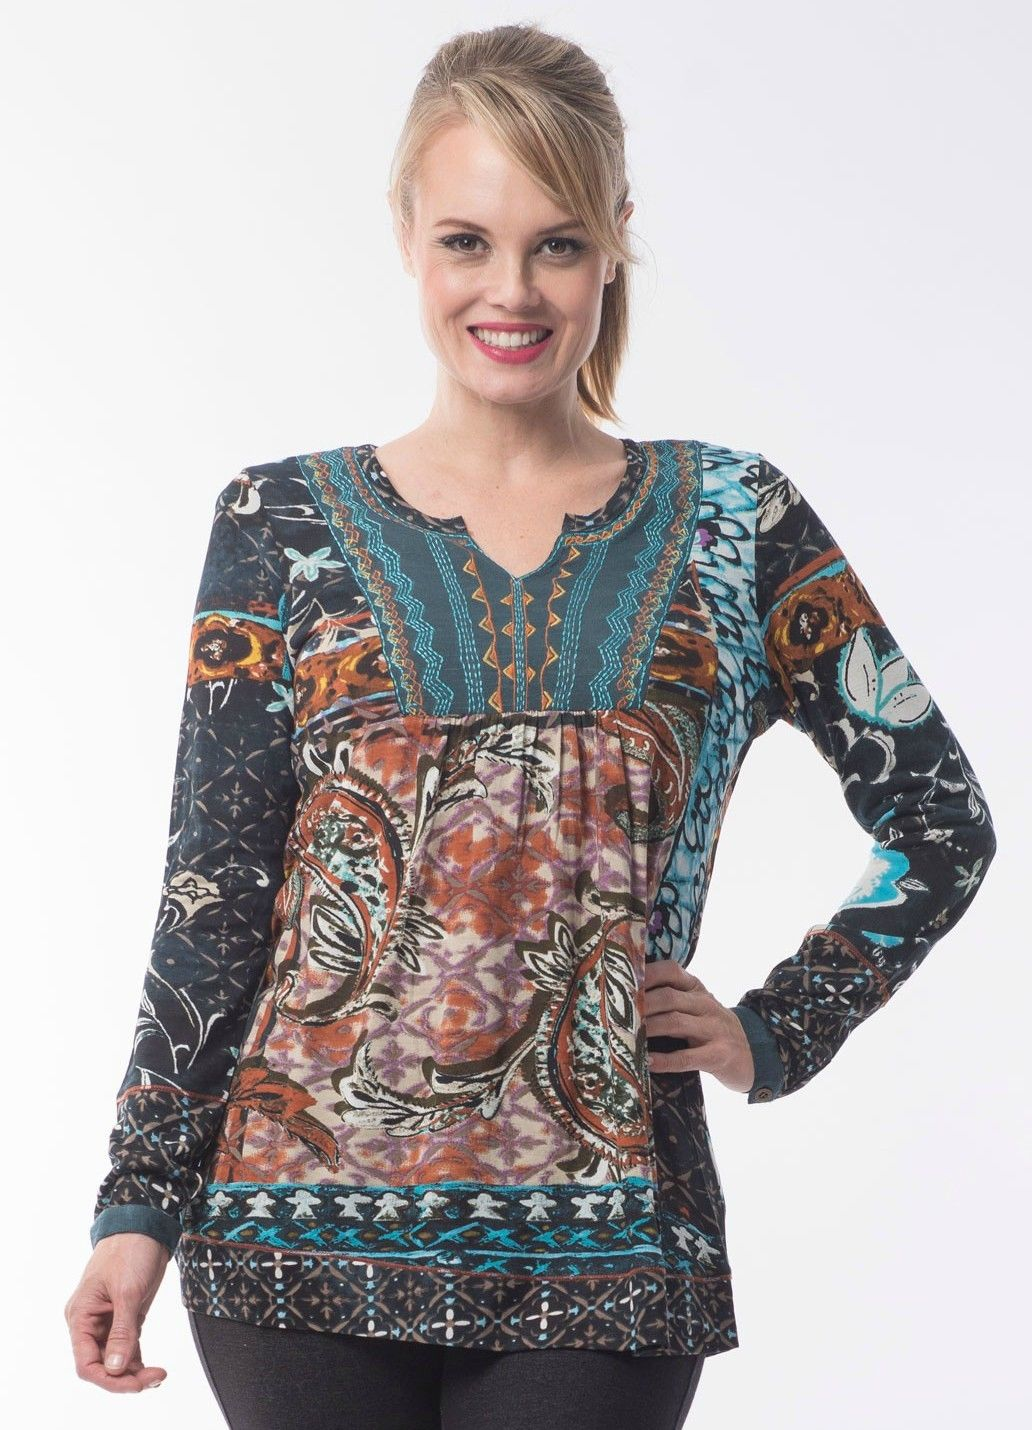 Orientique-Paisley-Patch-Boho-Ladies-Womes-Long-Sleeve-Tunic-Top-Blue-Grey-Aqua-382043072854